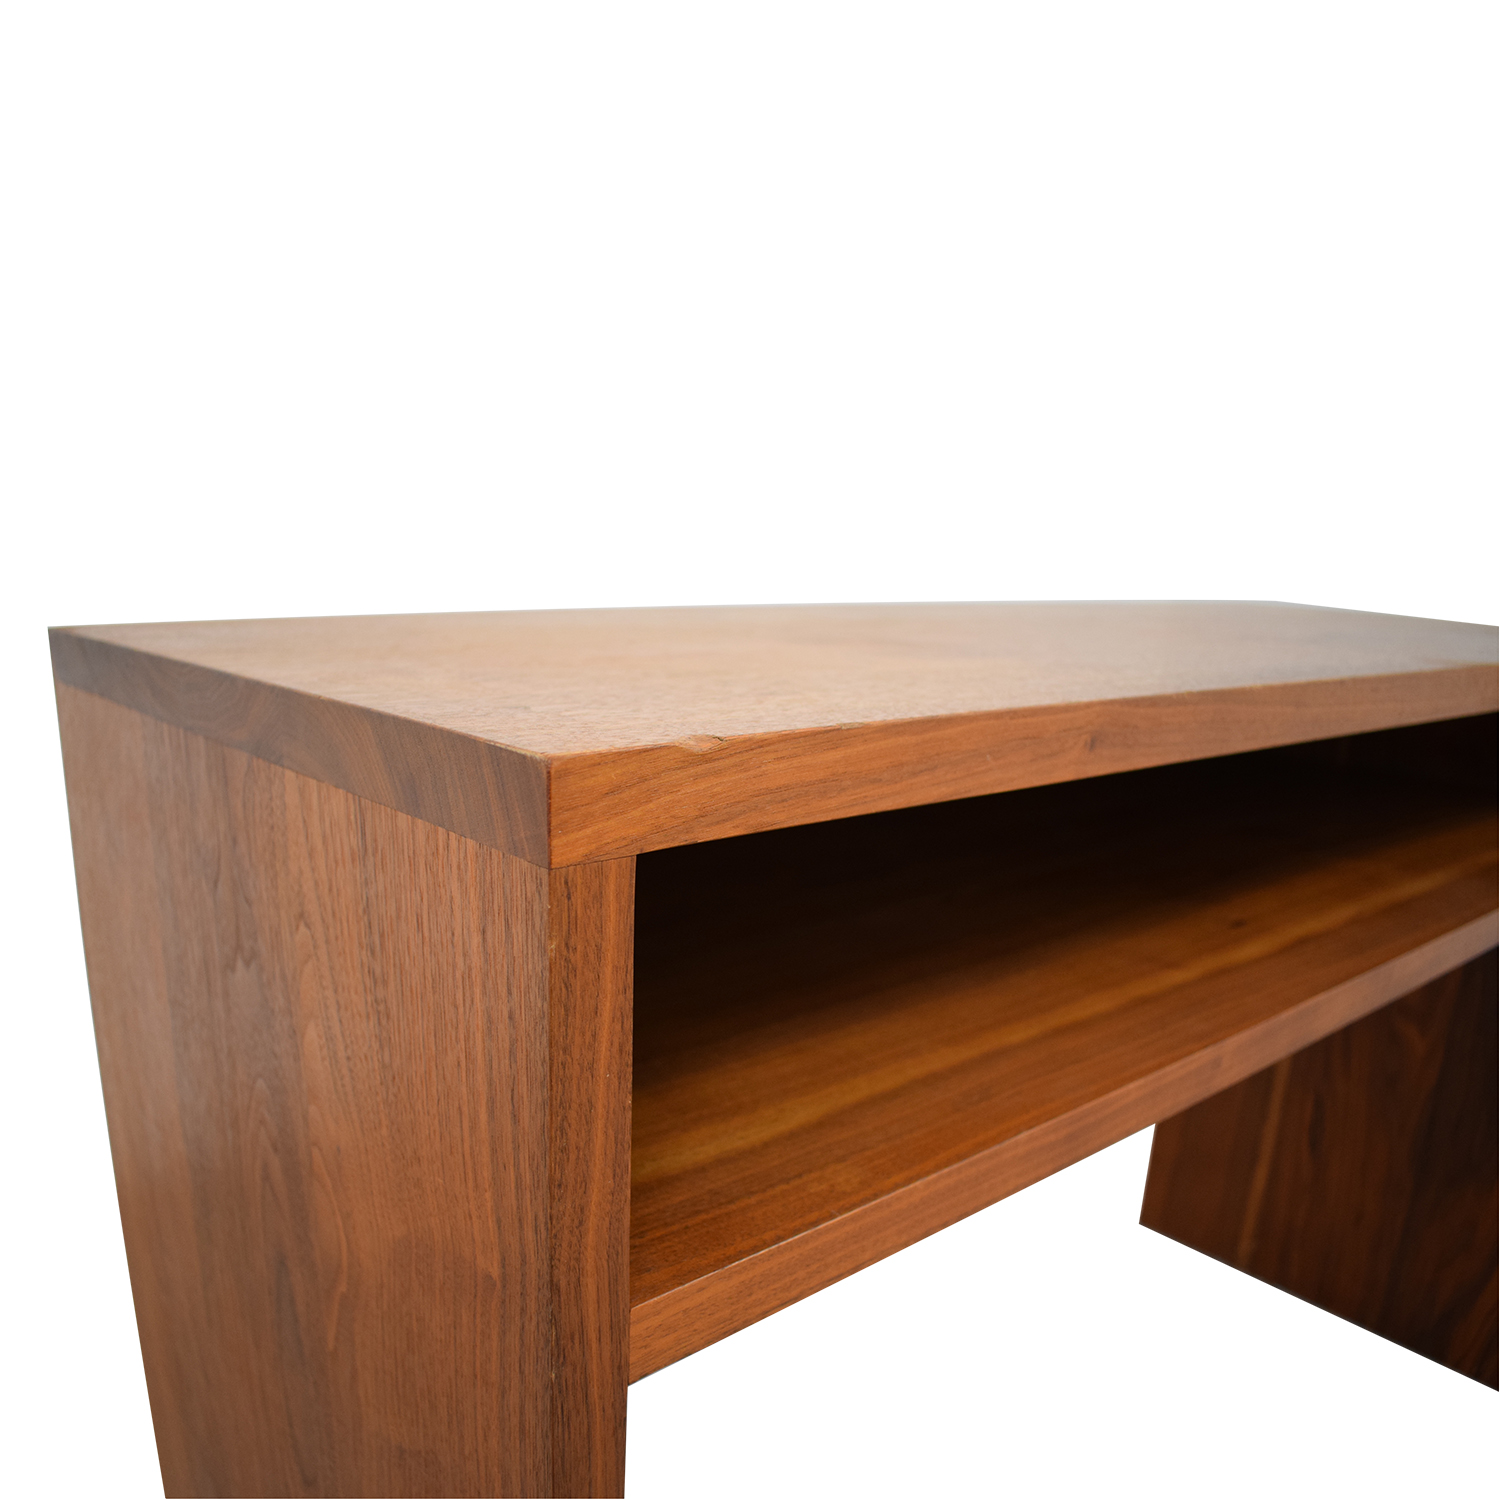 Custom Solid Walnut Desk with Enclosed Shelf Space nyc